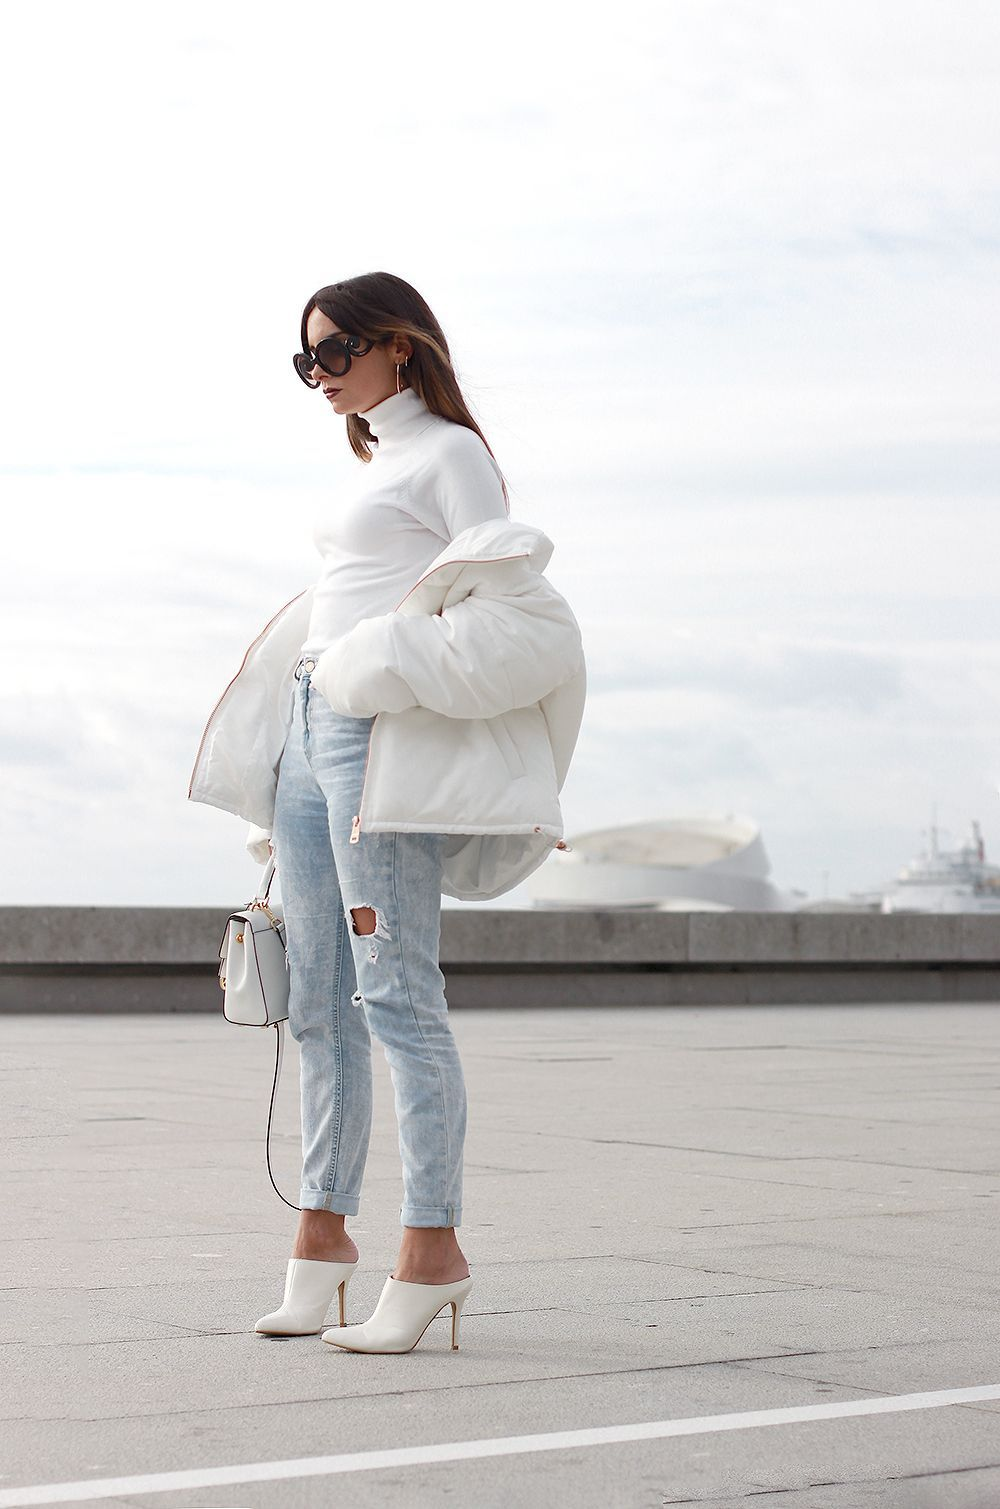 7 Ways To Look Chic In A Puffer Jacket The Edit Winter Jacket Outfits Puffer Jacket Outfit White Puffer Jacket [ 1509 x 1000 Pixel ]